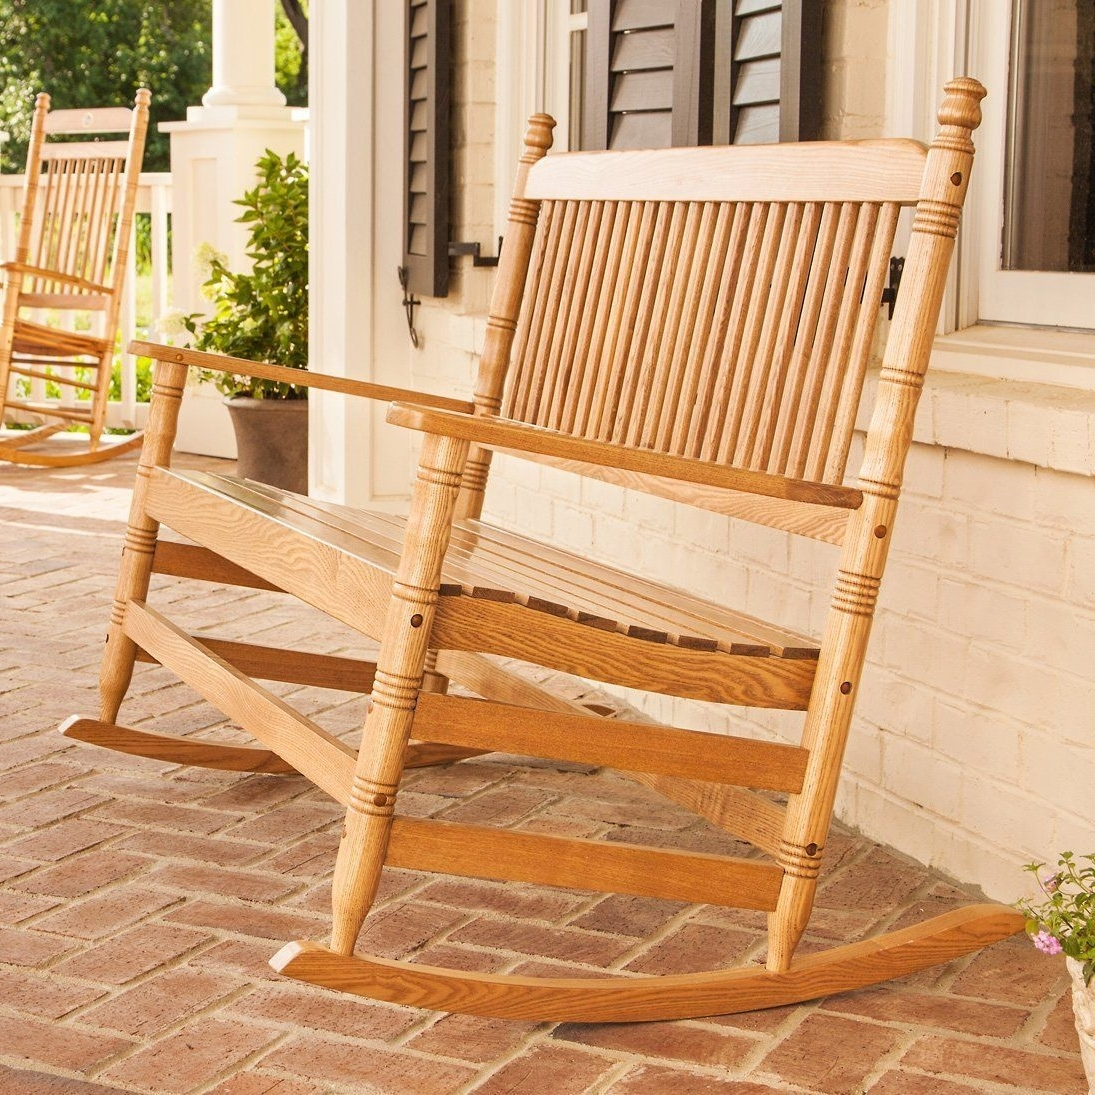 Trendy 4' Oak Double Rocking Chair – From Cracker Barrel – I Need This On With Regard To Rocking Chairs At Cracker Barrel (View 13 of 15)